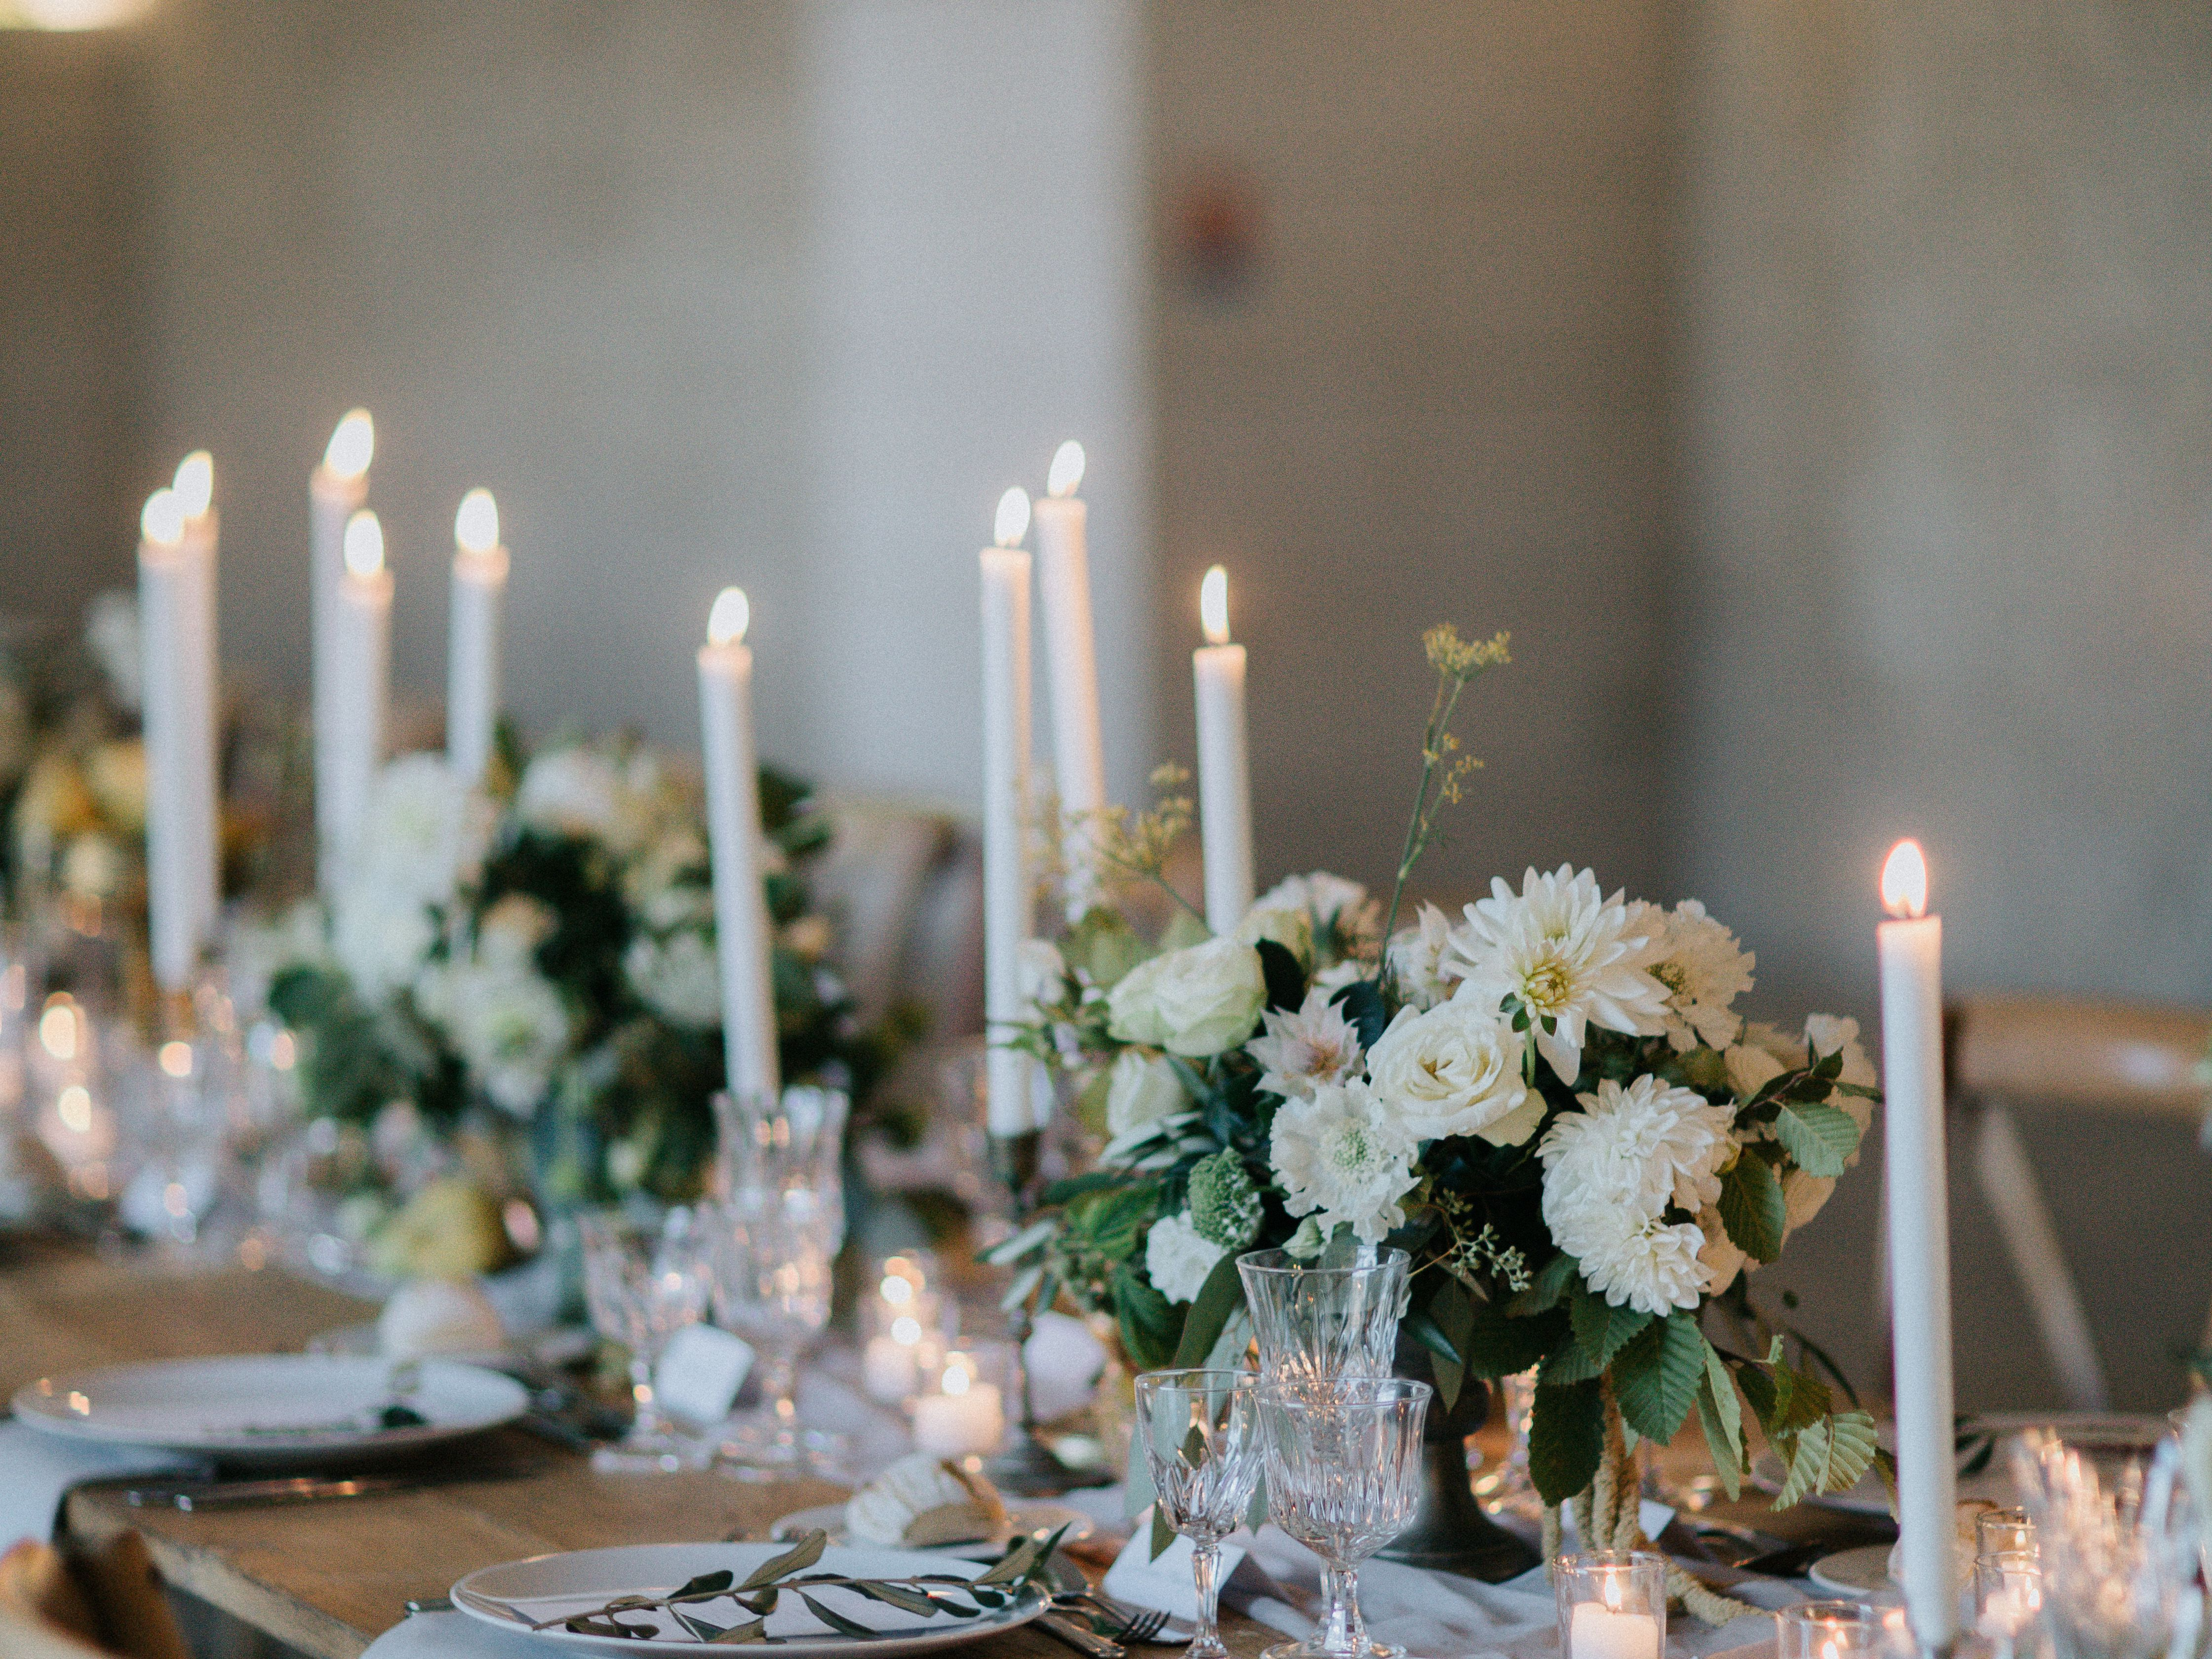 10 Ways To Use Colorful Taper Candles At Your Wedding Reception